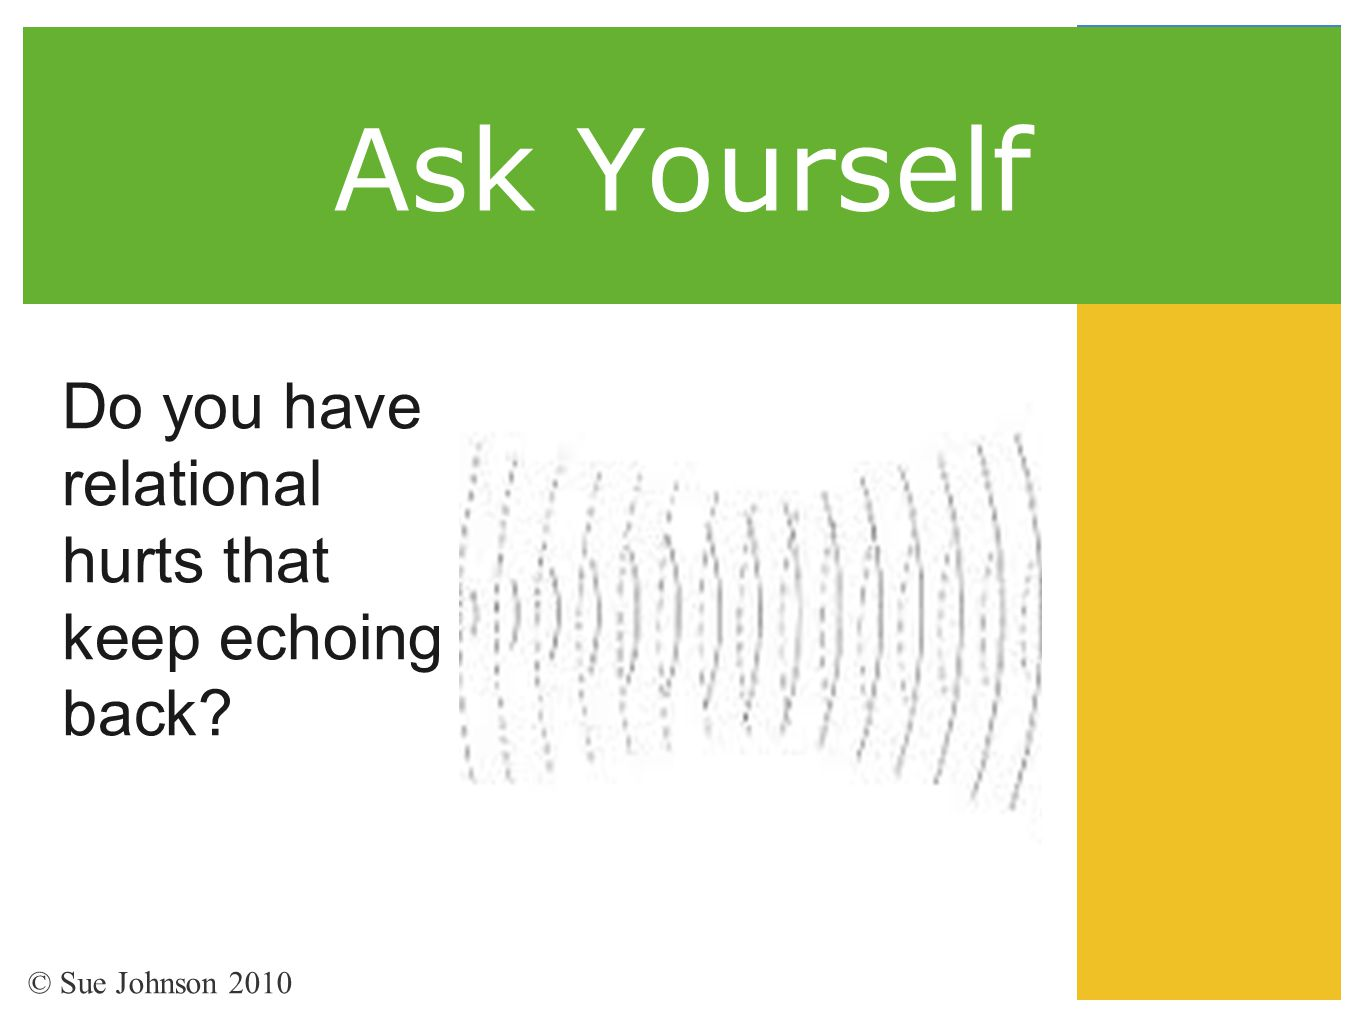 Ask Yourself Do you have relational hurts that keep echoing back